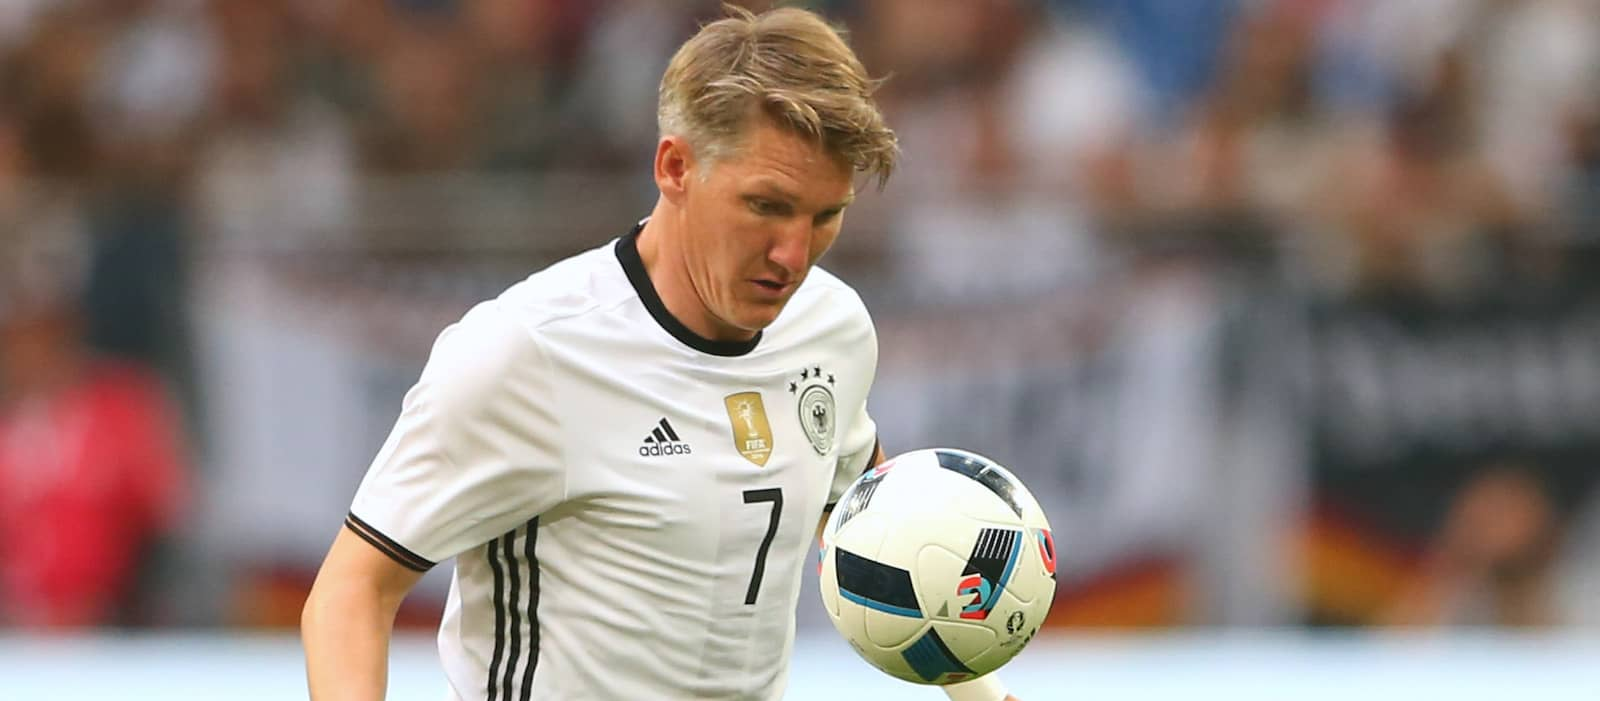 Bastian Schweinsteiger hopes to play for Manchester United again